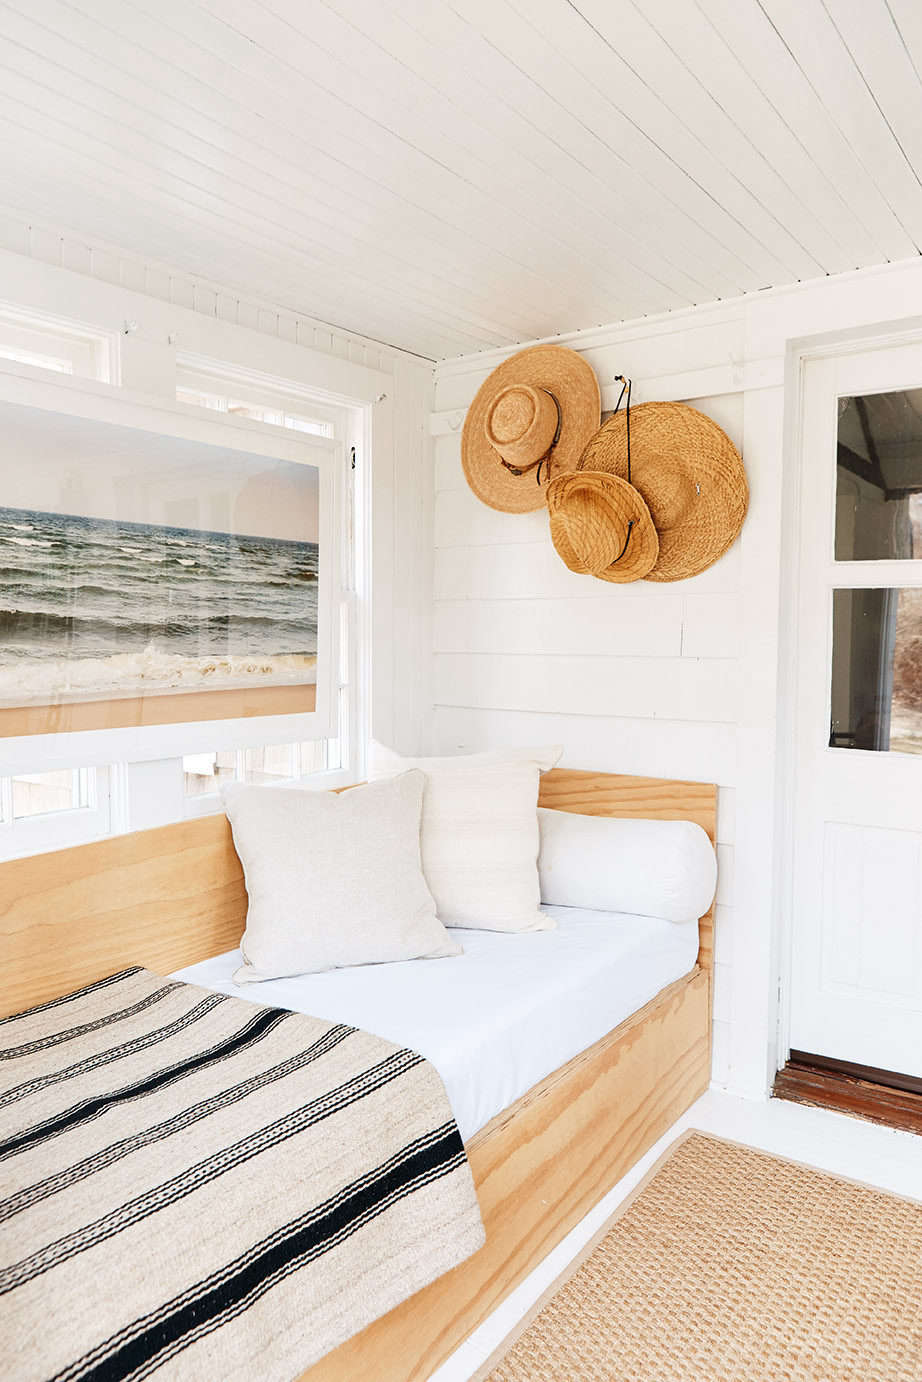 The Donald Judd-inspired plywood daybed was built for his old home but fit nicely here. Above it hangs a photograph of a Cape Cod beach by his friend Barry Balczun.